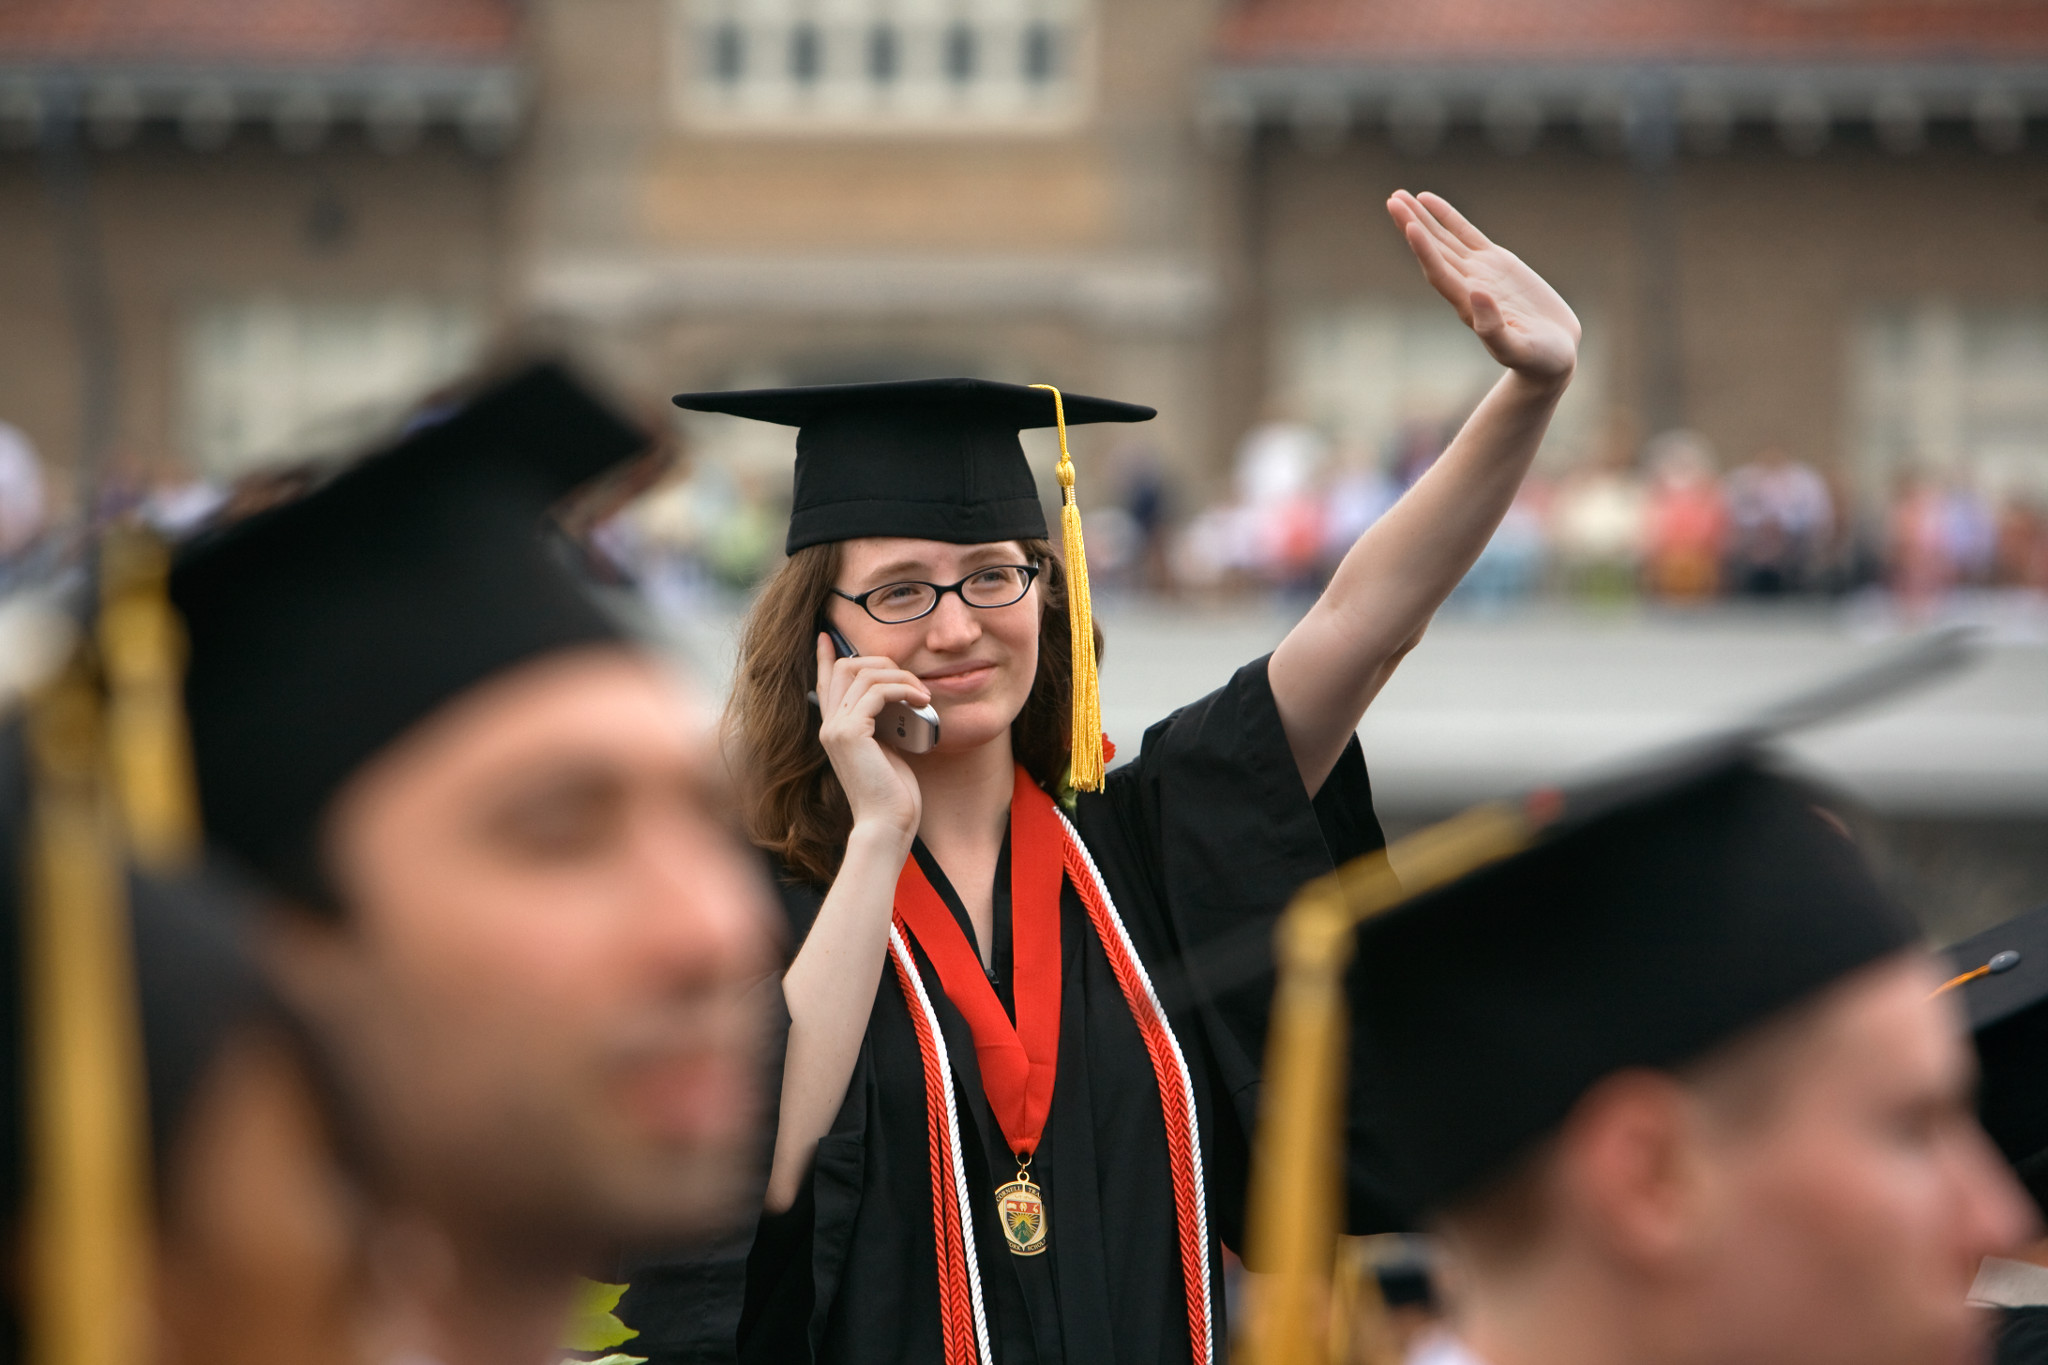 Student on phone at graduation